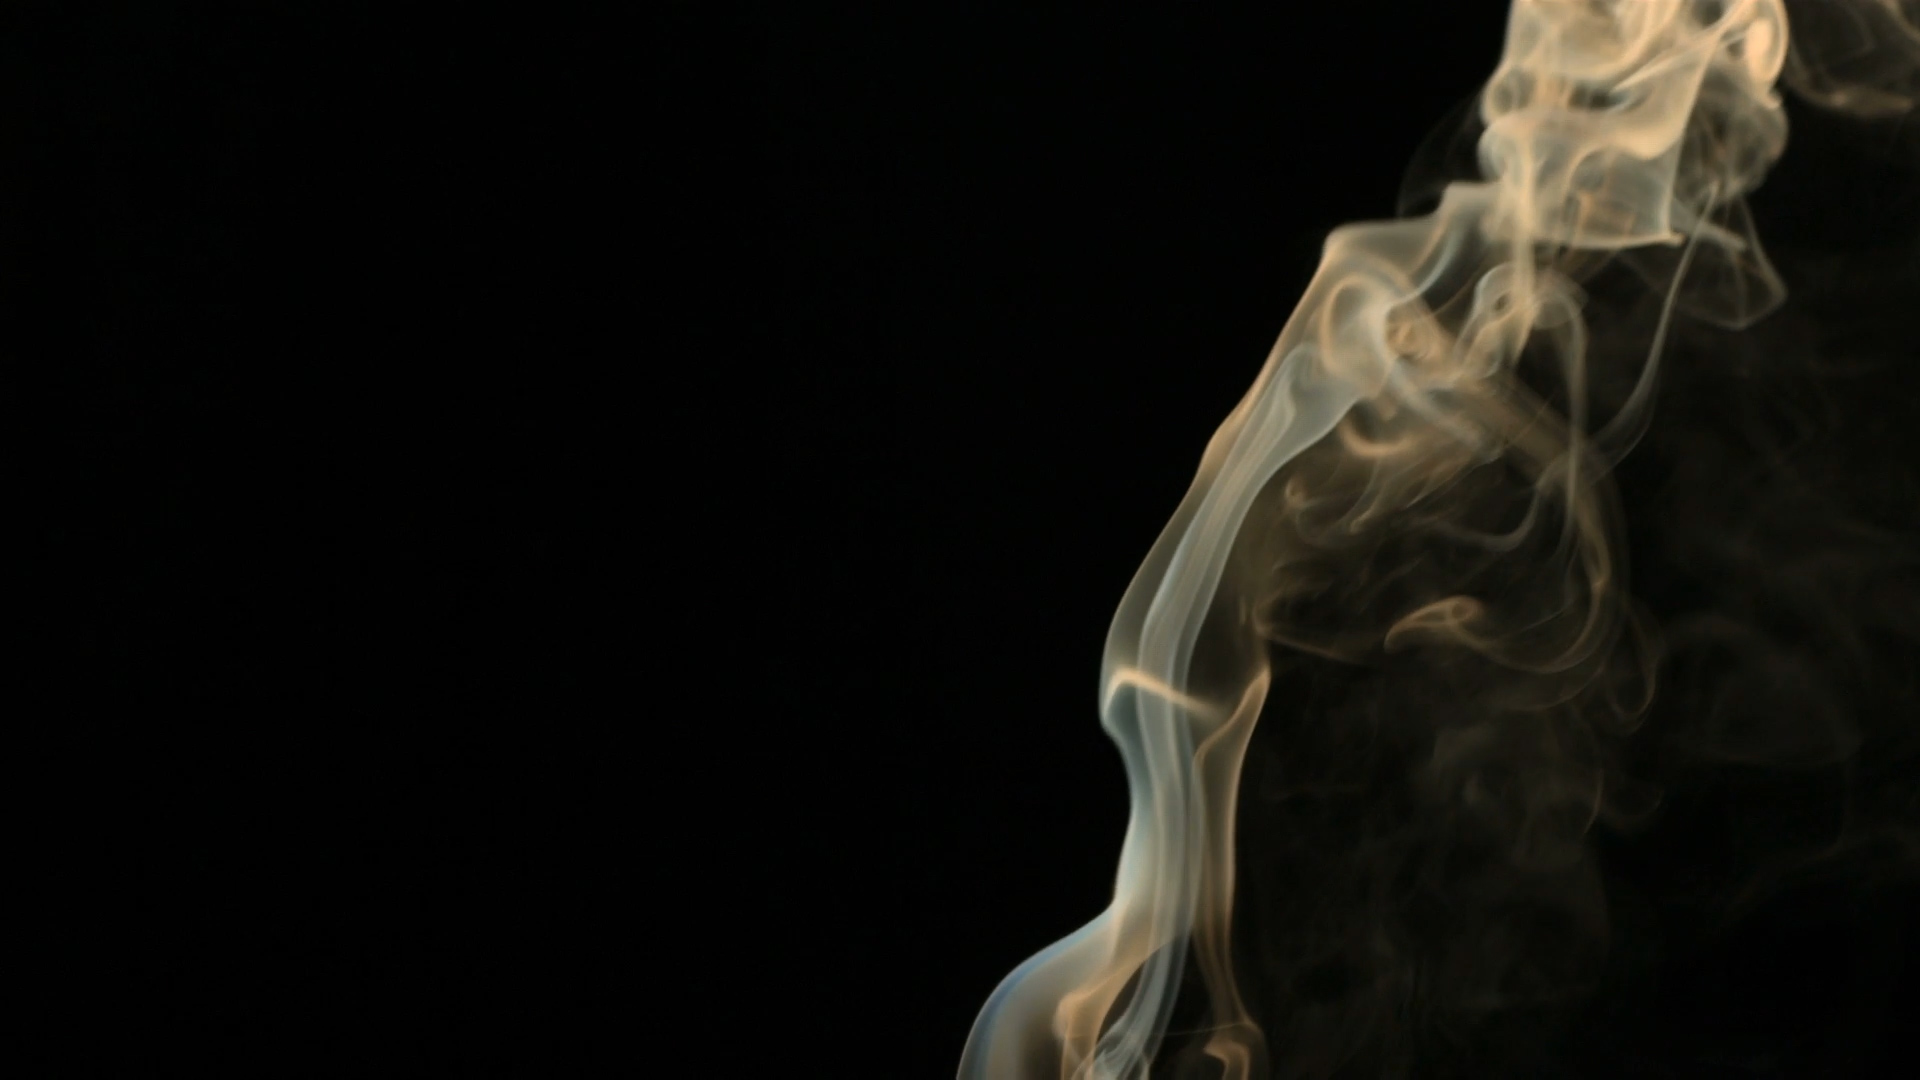 Smoke from a cigarette.